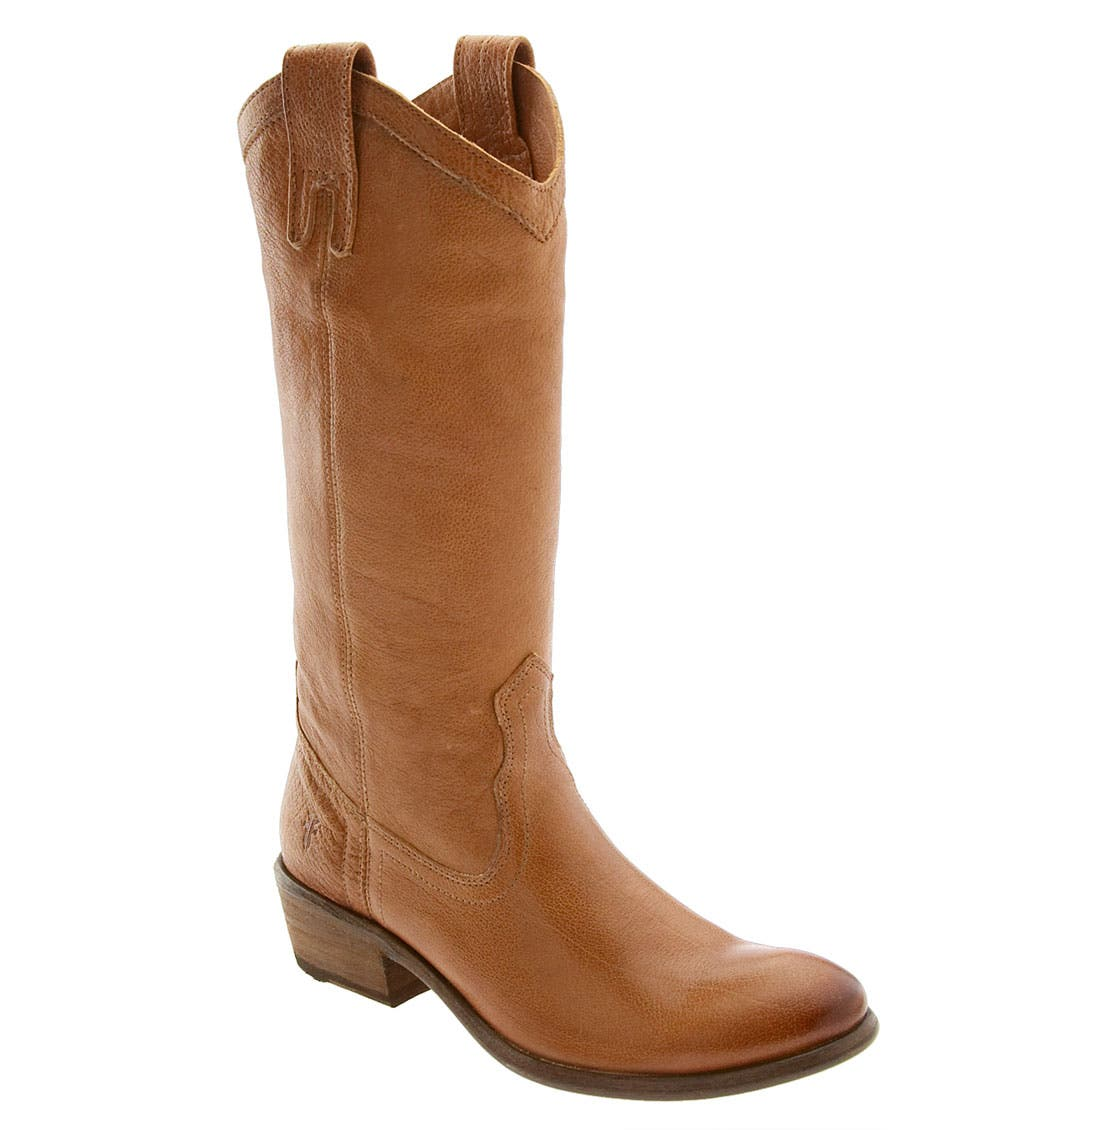 Alternate Image 1 Selected - Frye 'Carson' Pull-On Boot